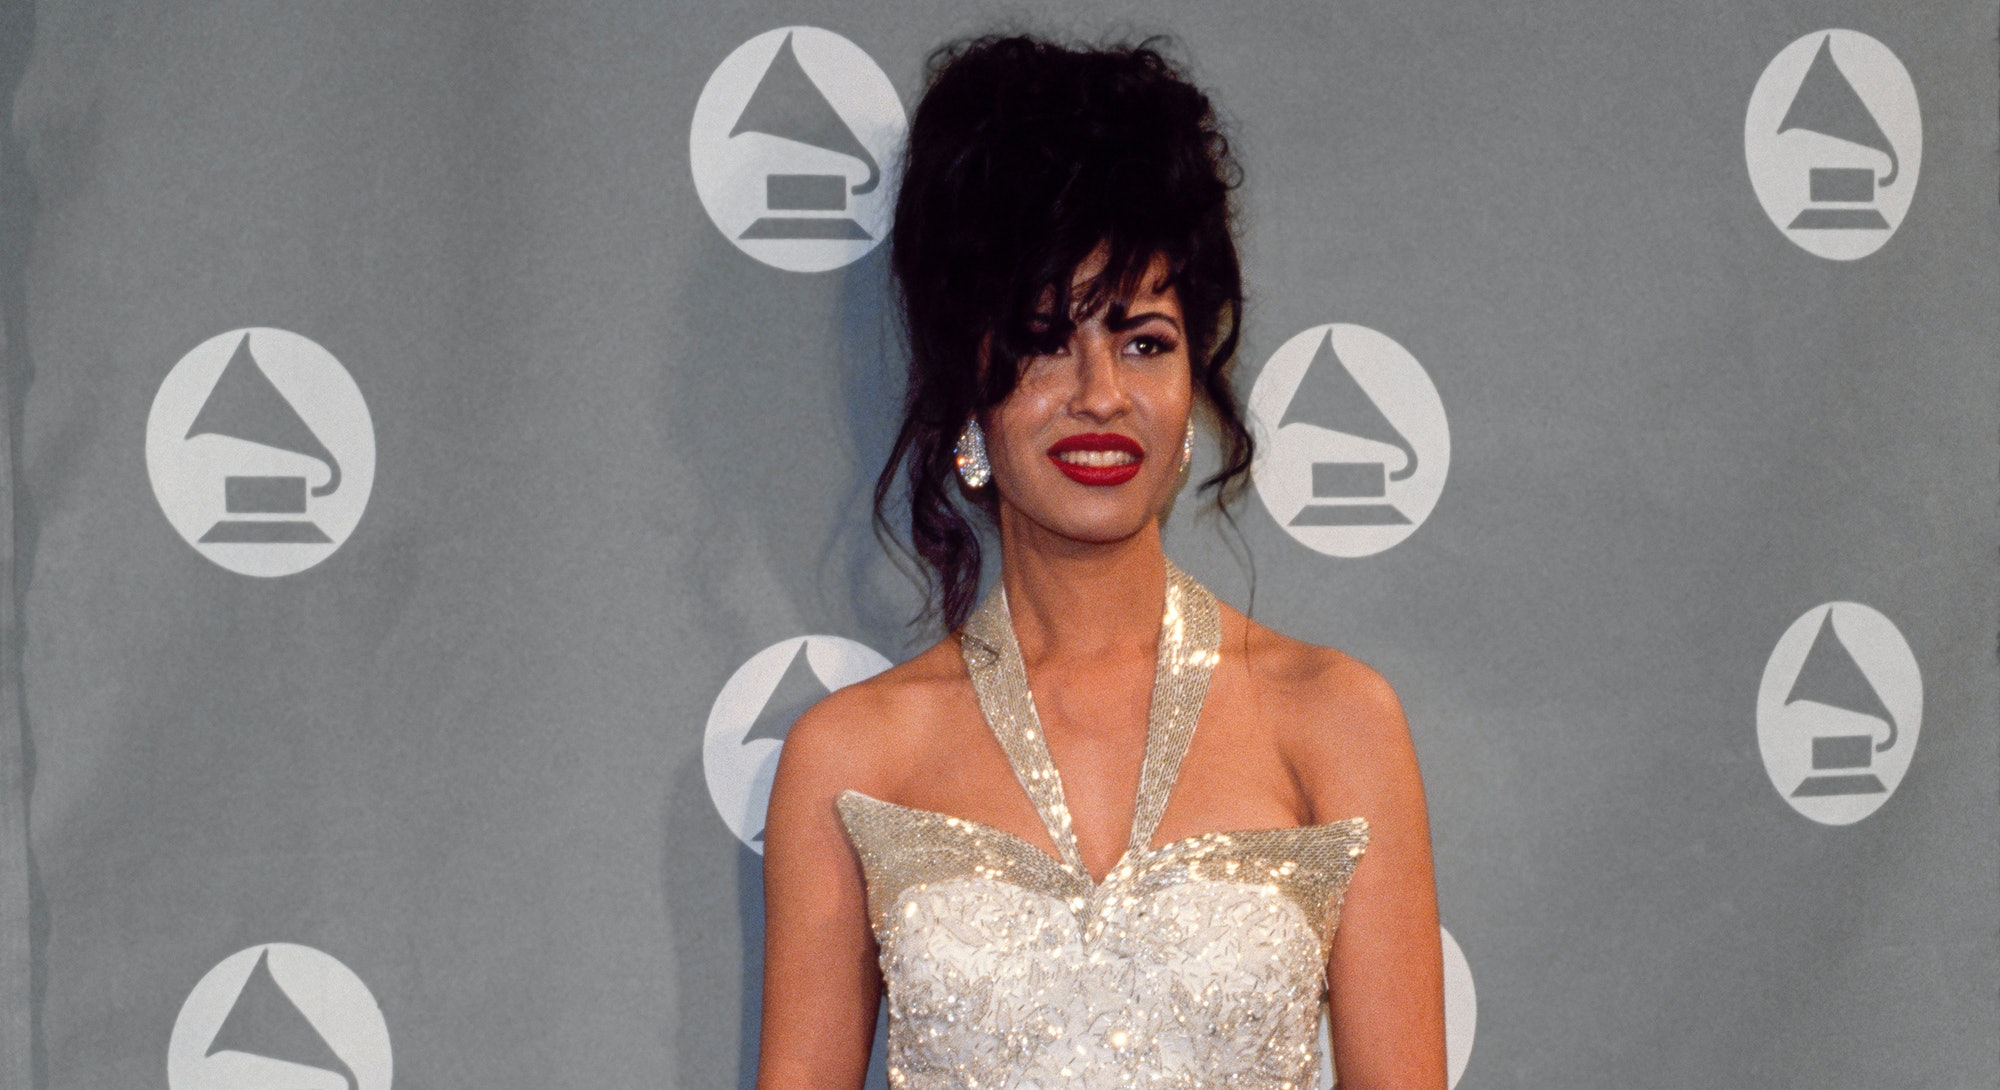 Singer Selena (Quintanilla) receives Grammy Award at The 36th Annual Grammy Awards on March 1, 1994 in New York, New York at Radio City Music Hall. (Photo by Larry Busacca/Getty Images)